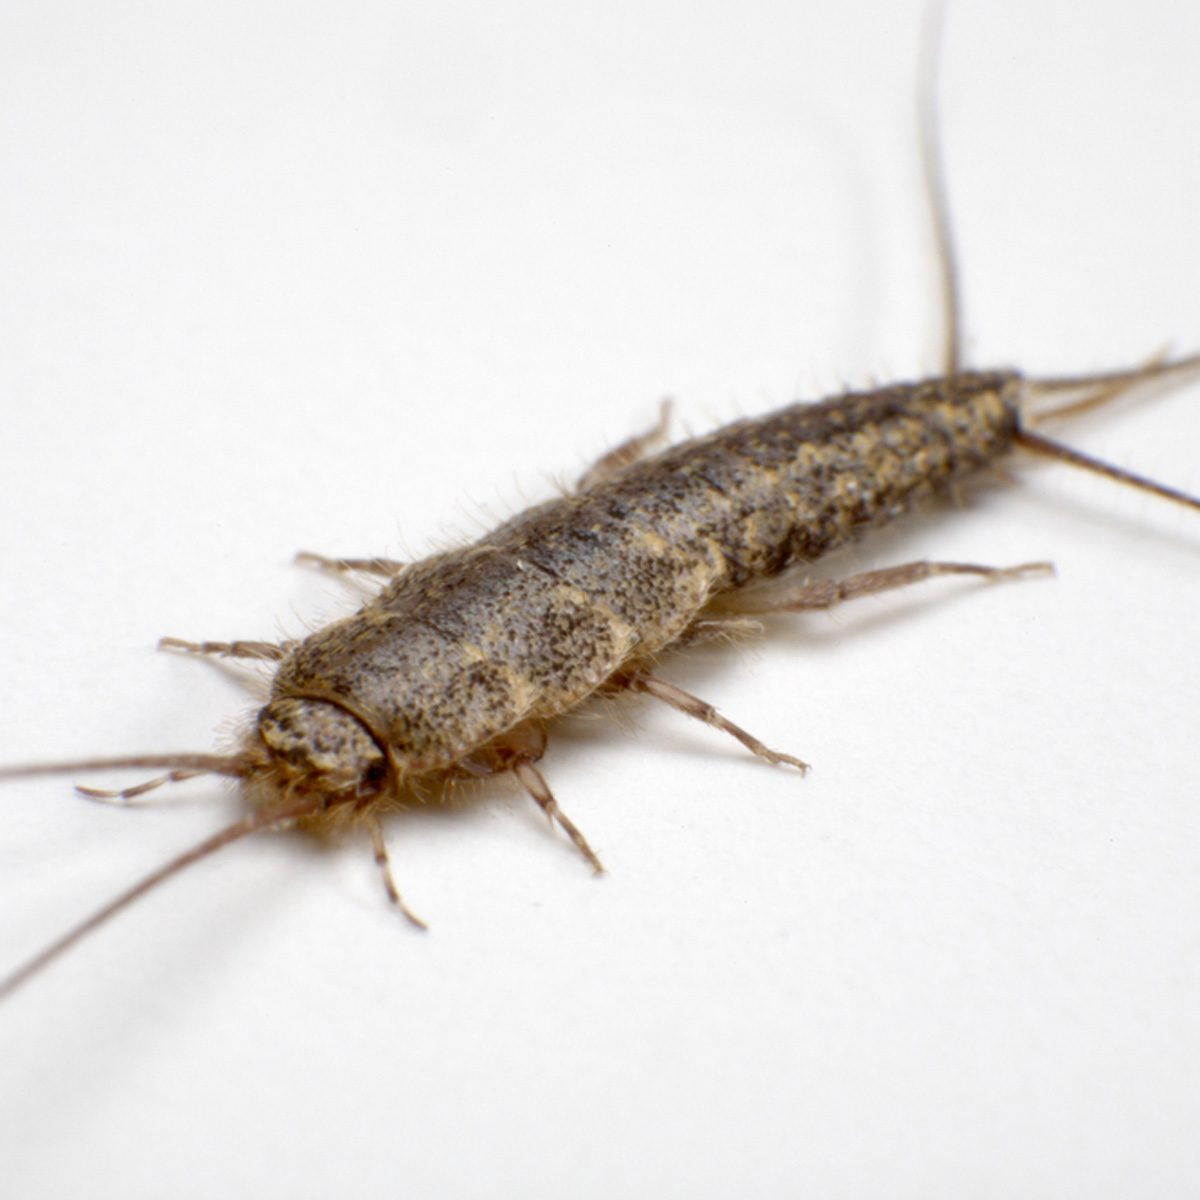 10 Things You Should Never Store In Your Basement Or Crawl